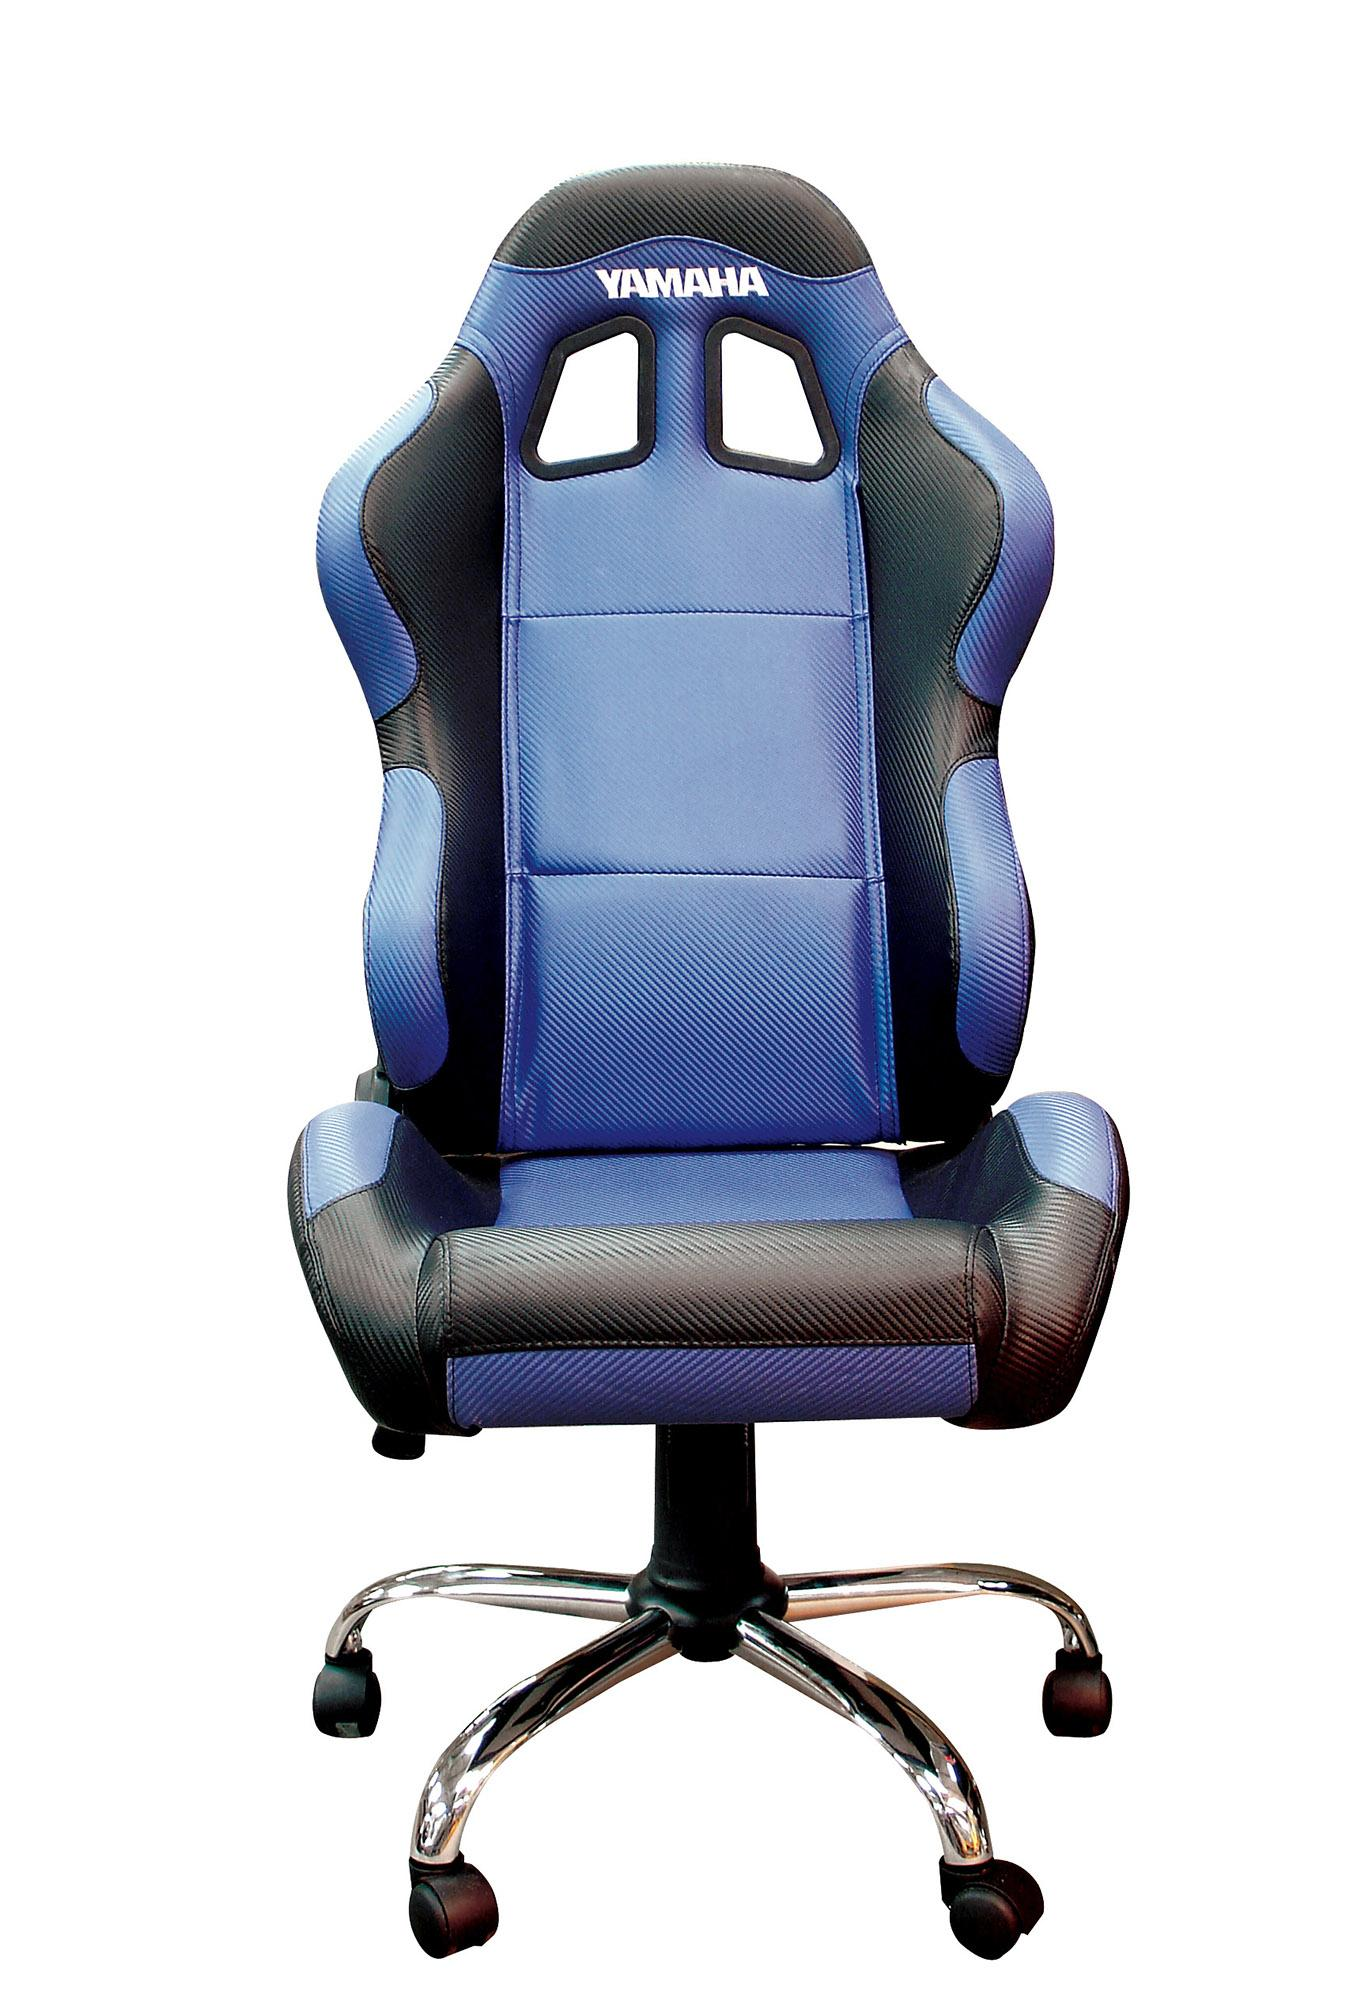 RIDER PADDOCK TEAM CHAIR - YAMAHA BLUE WITH BLACK TRIM